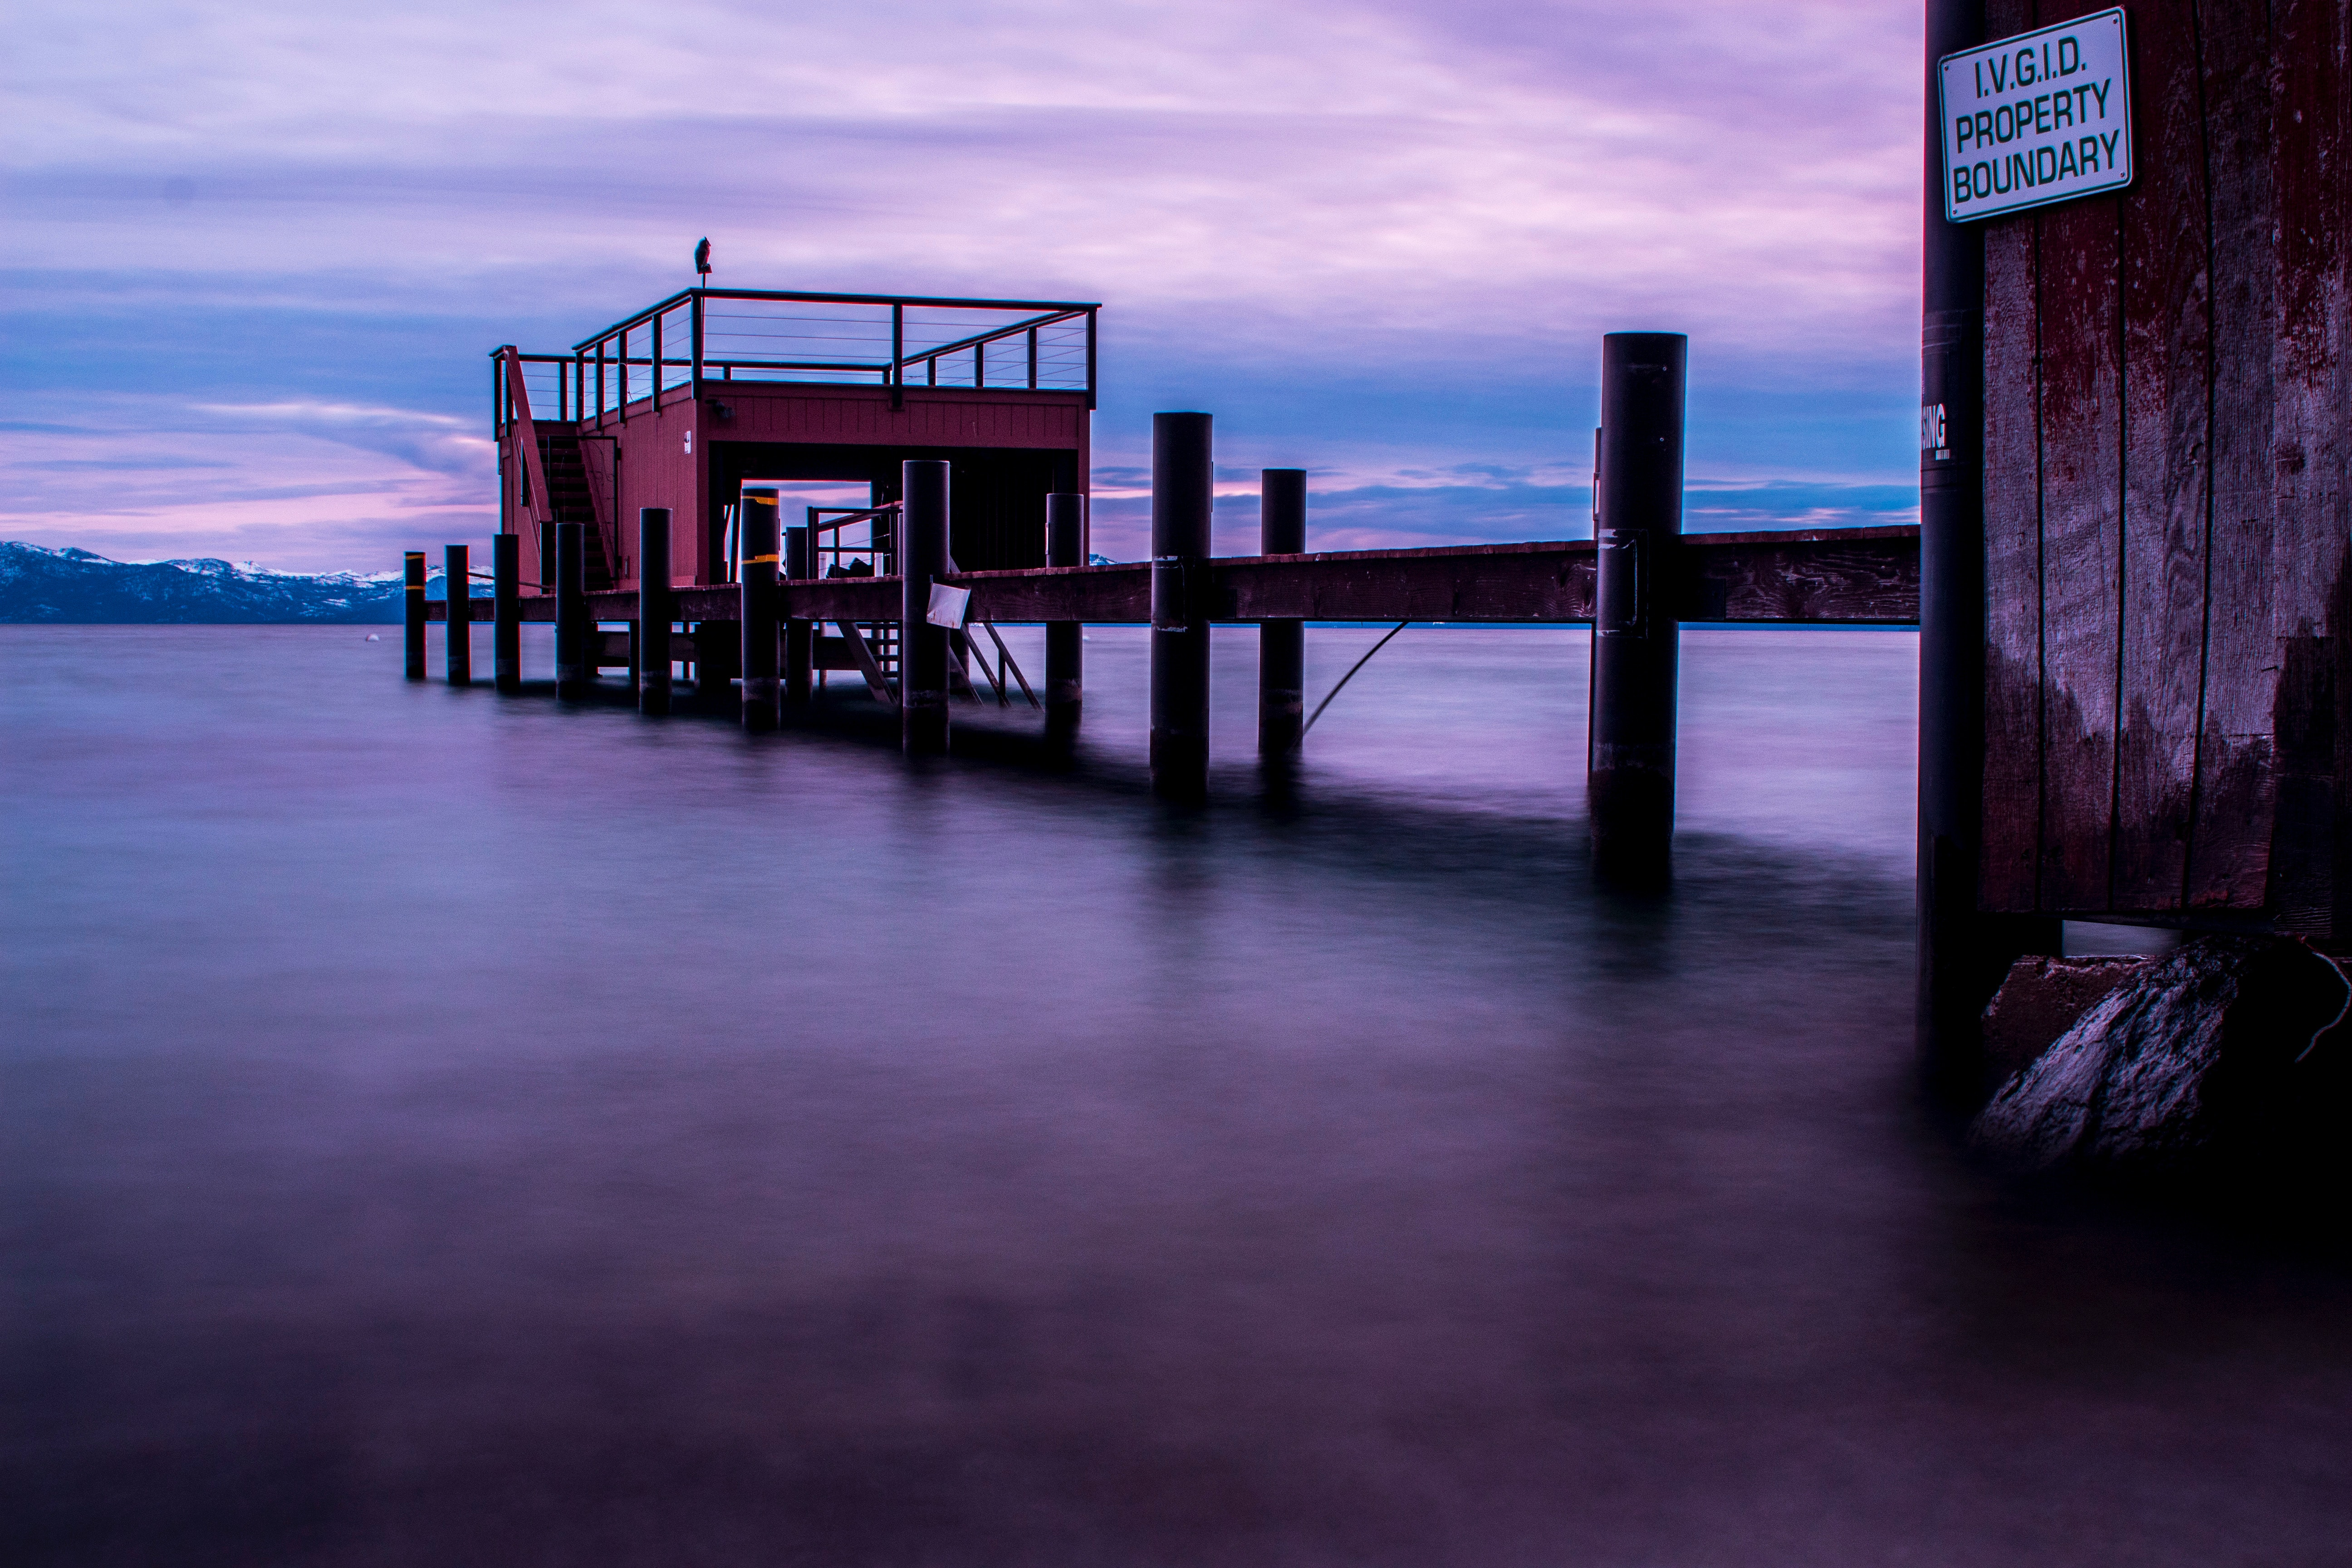 Time-lapsed Photography of Body Water With Red Stall, Boardwalk, Pier, Time lapse, Sunset, HQ Photo